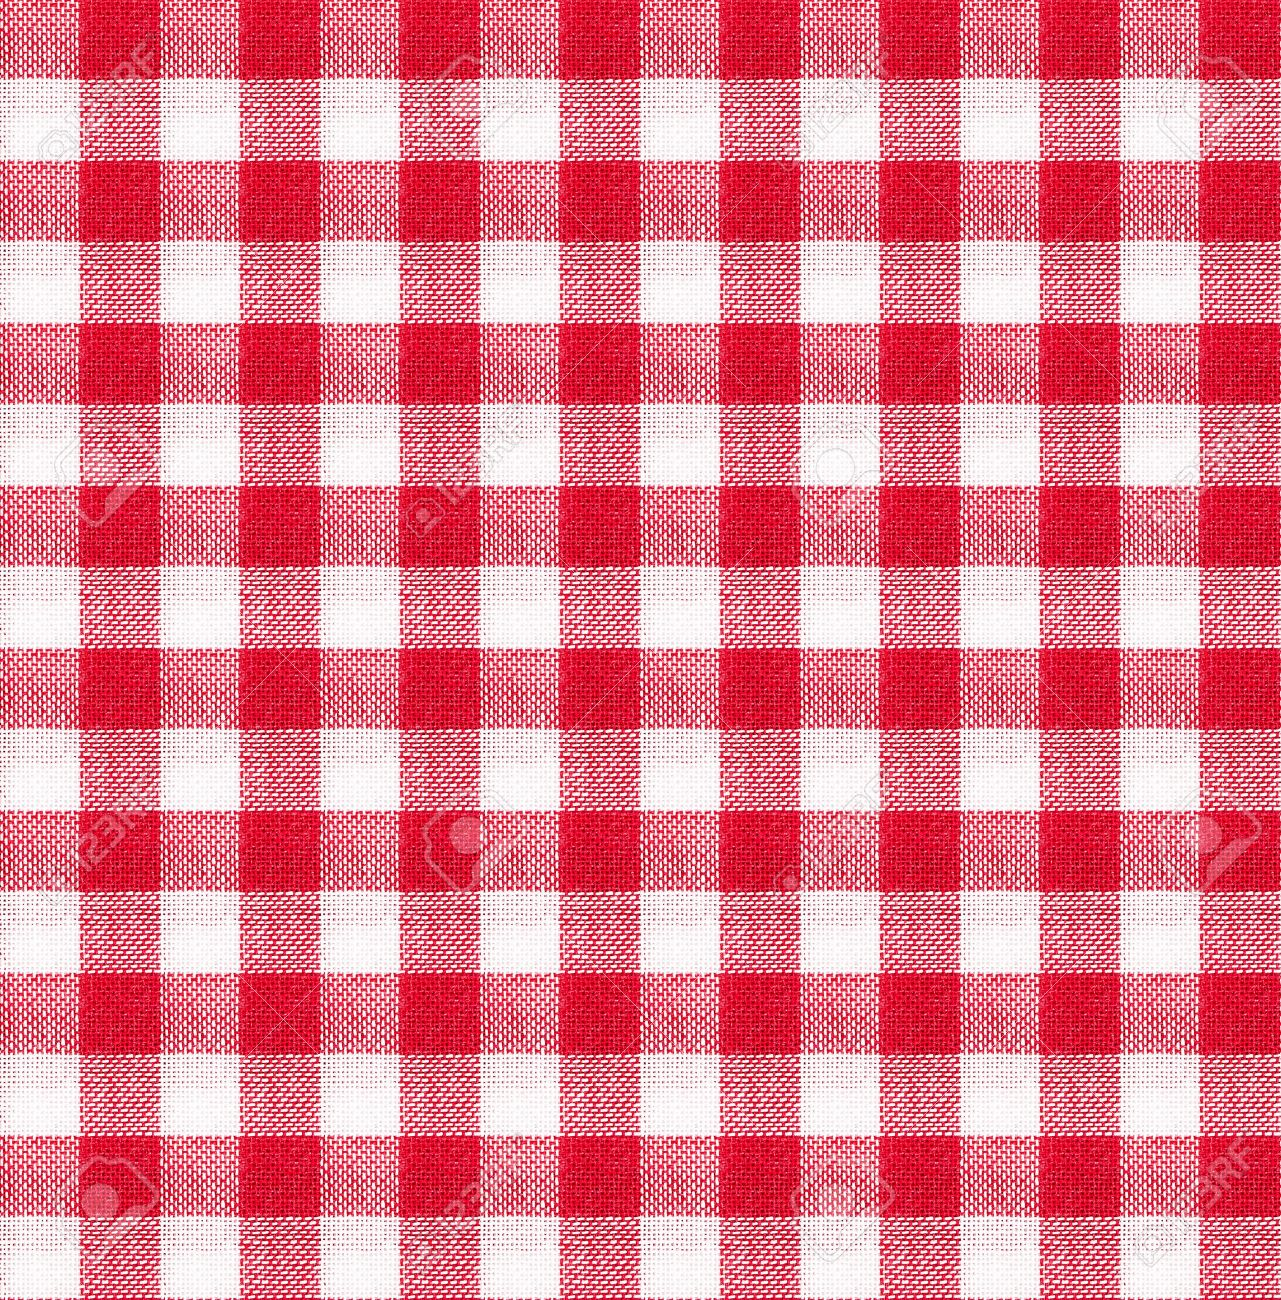 Marvelous Red And White Tablecloth Italian Style Texture Wallpaper Stock Photo    24979793